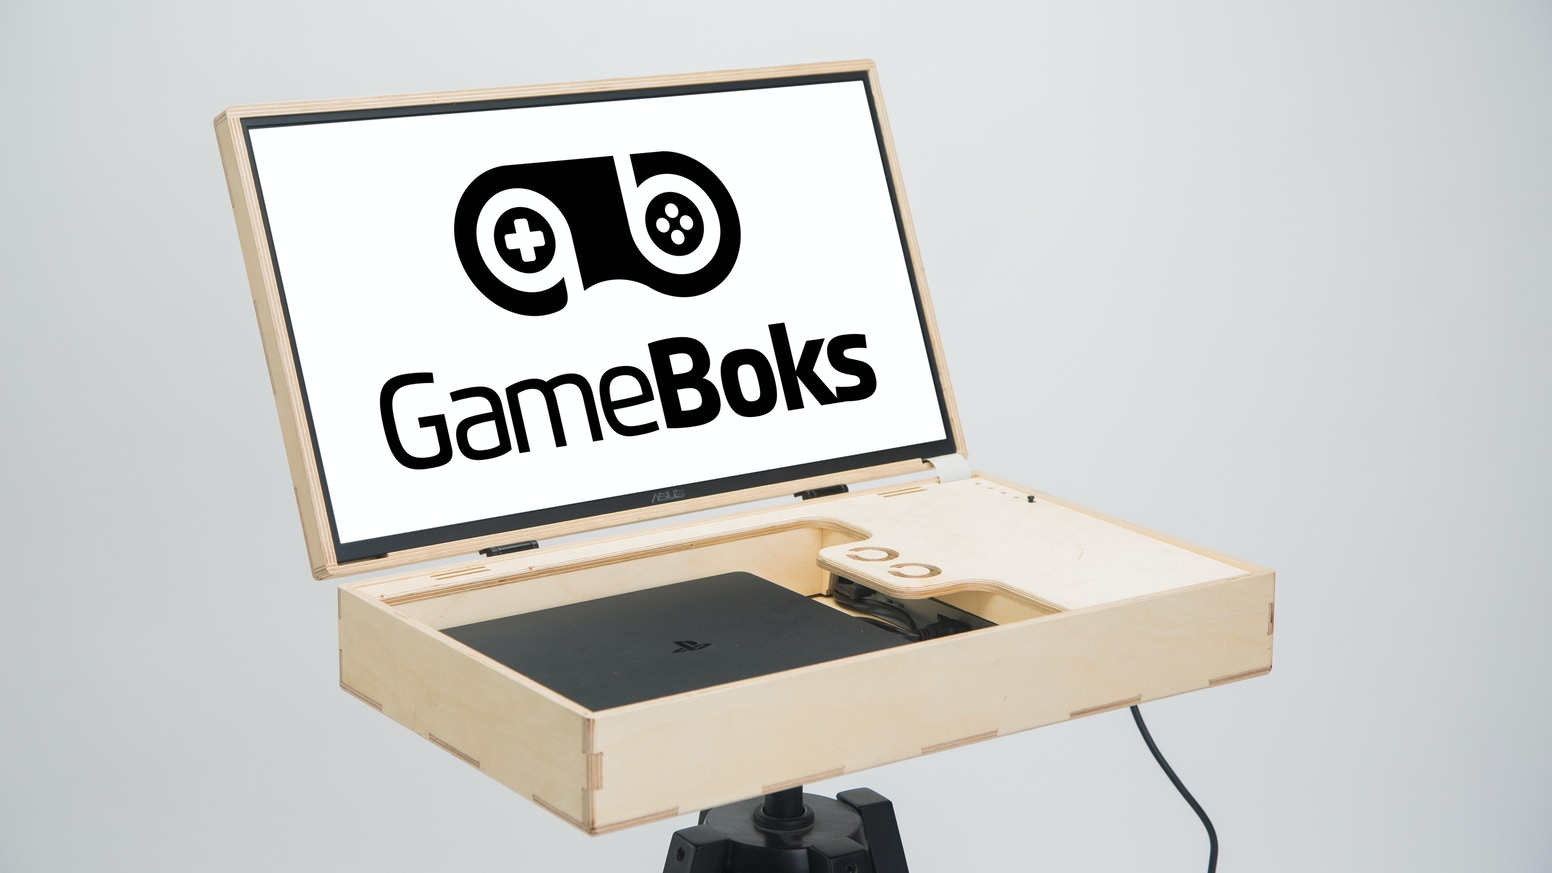 GameBoks is a gaming station that takes gaming further. Made in Denmark of high quality wood from sustainable sources.